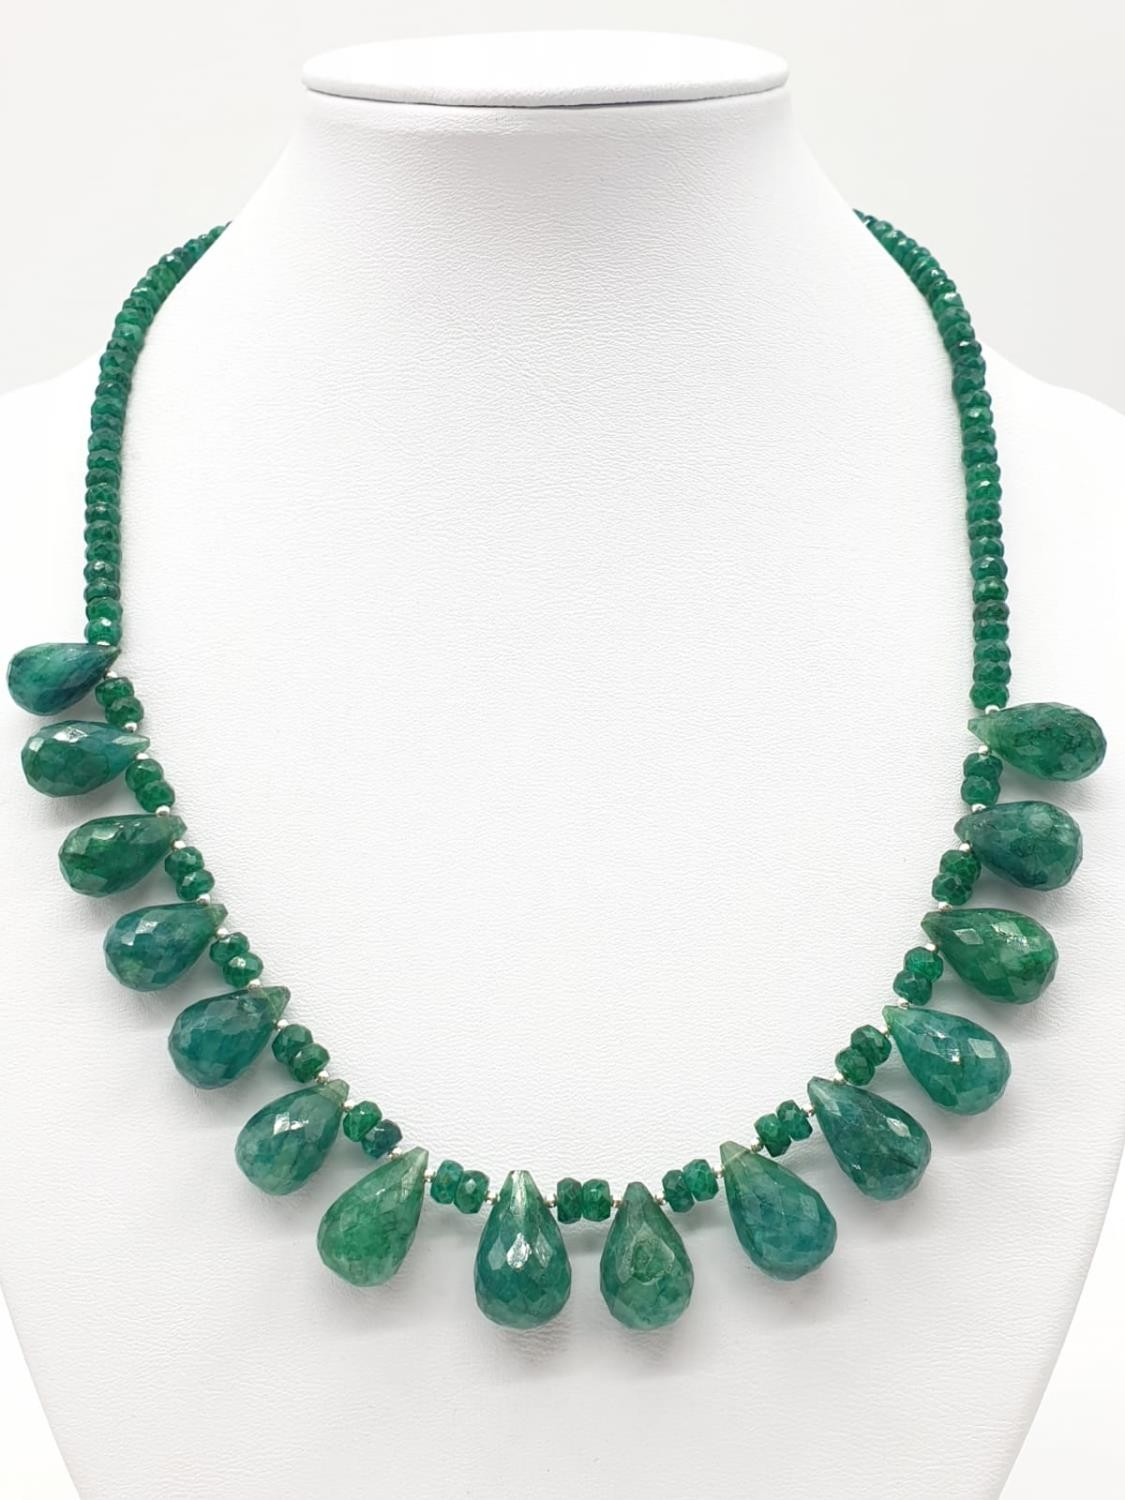 A Emerald Drops Necklace With Matching Dangler Earrings - Image 4 of 4